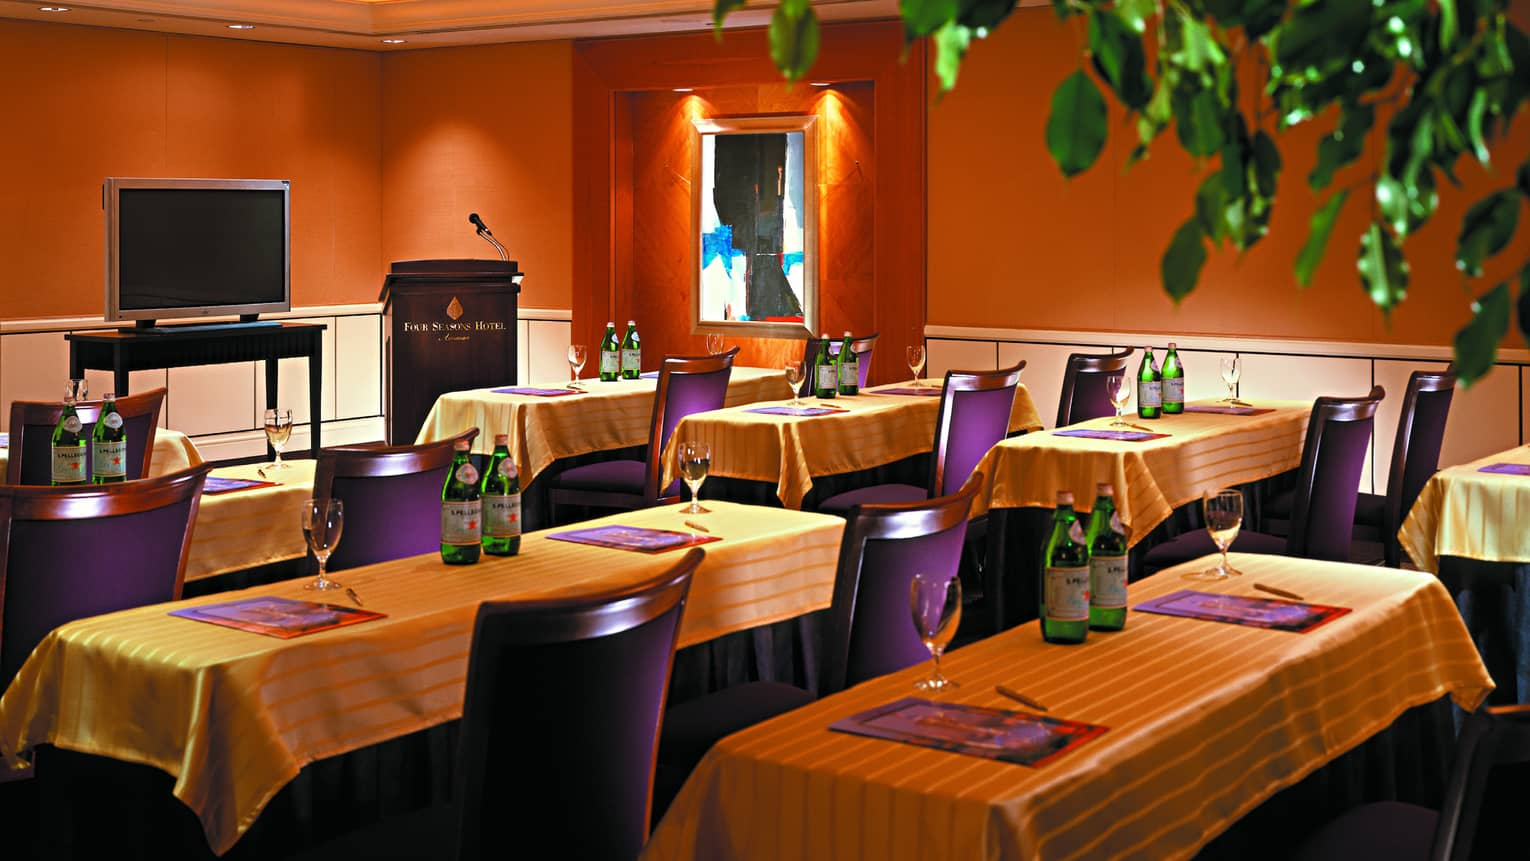 The Crown Room meeting with rows of small tables with gold linens, purple chairs facing small TV and podium